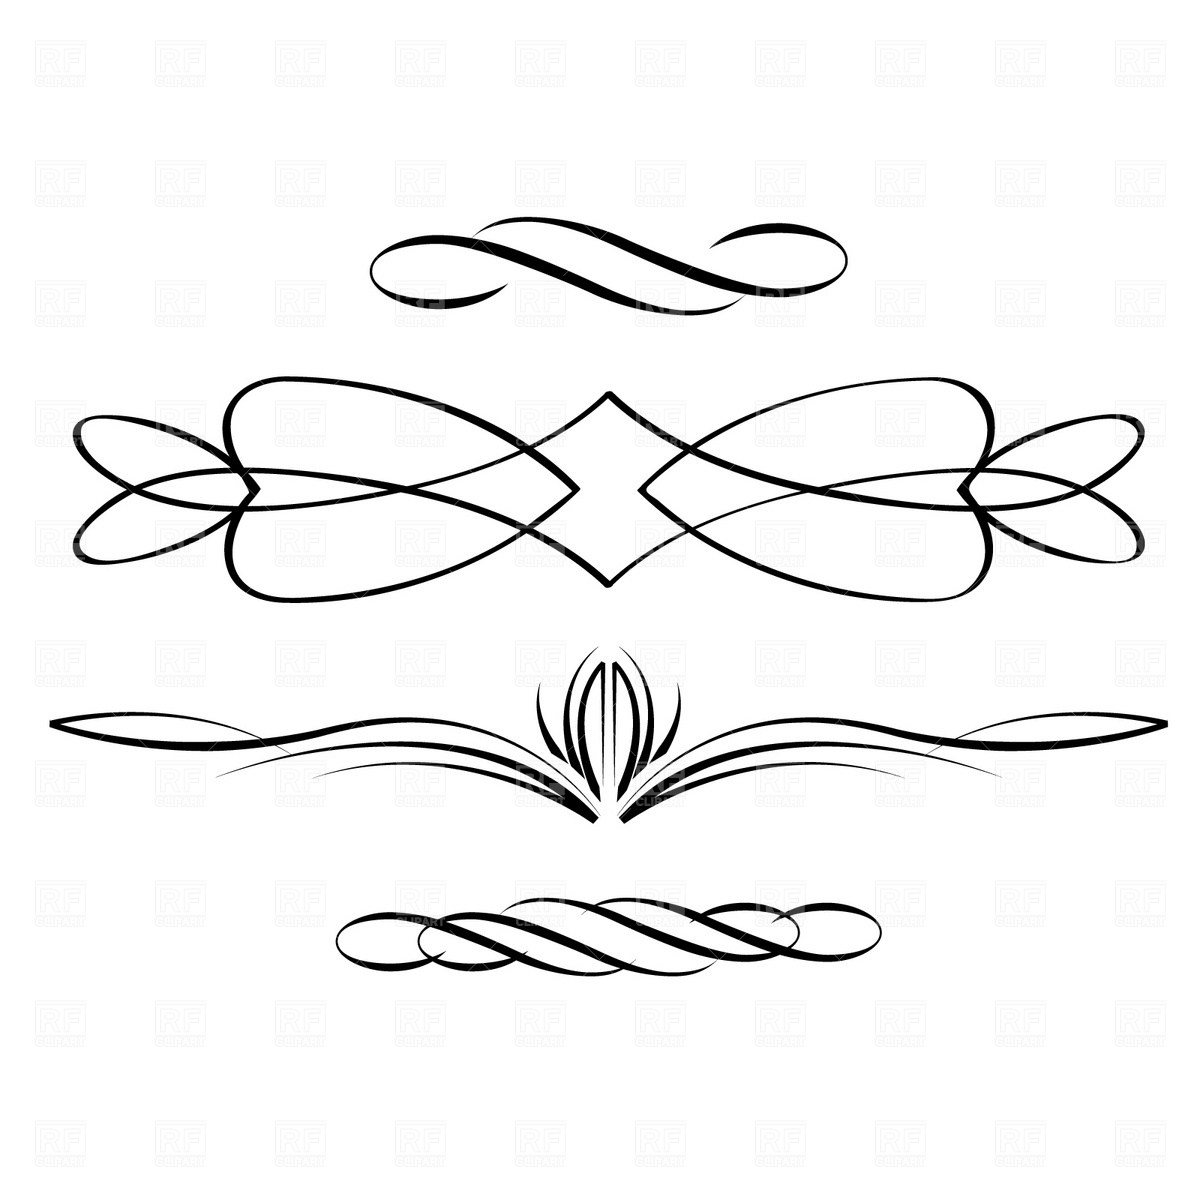 Scroll artwork clipart picture library Decorative Scroll Free Clipart - Clipart Kid picture library